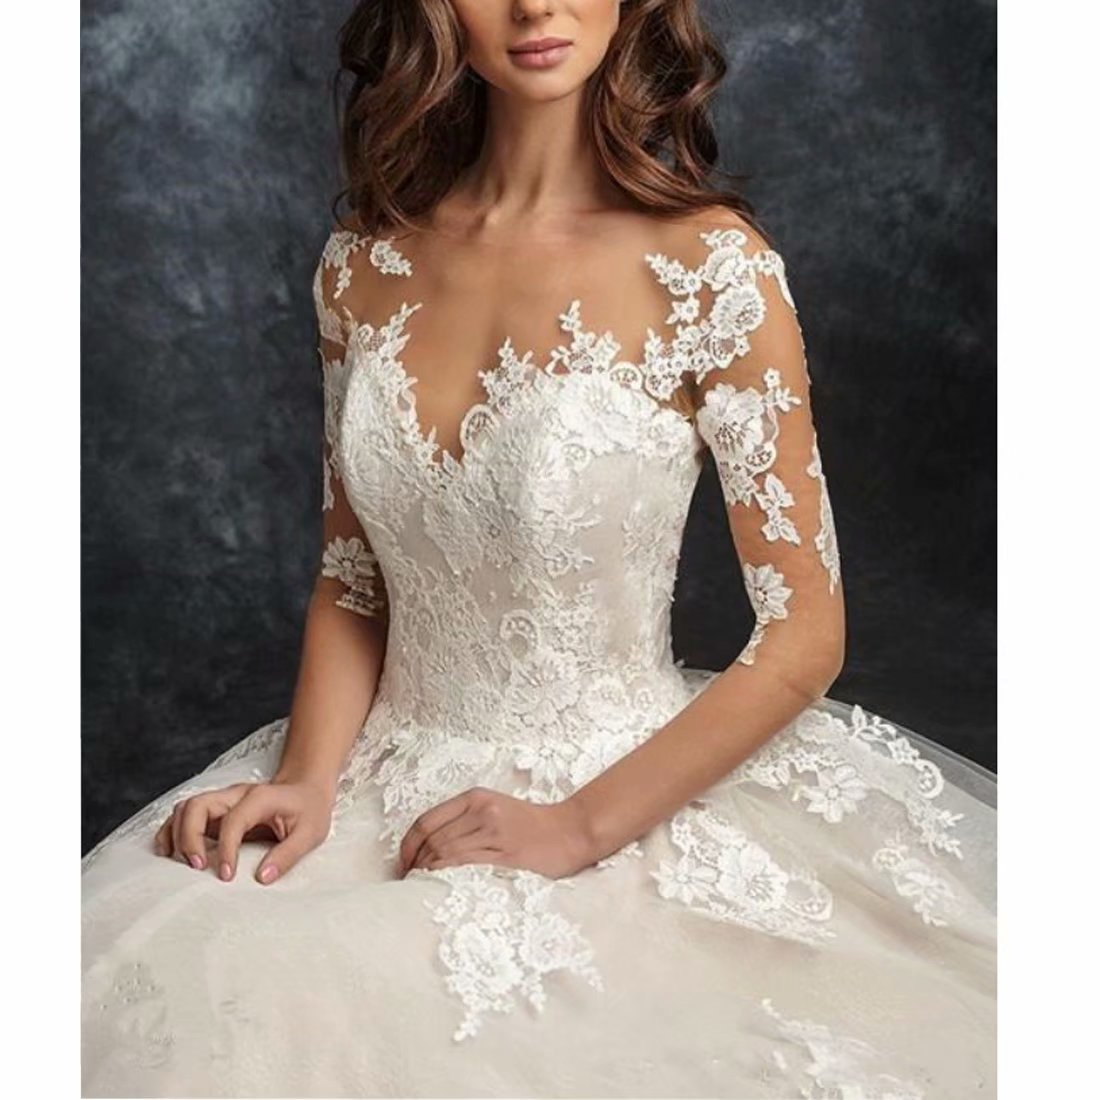 388db0cf9f7b DingDingMail Women's Scoop Neck Lace Ball Gown Wedding Dress for Bride 2019  Applique 3/4 Sleeves Open Back Bridal Gowns at Amazon Women's Clothing  store: